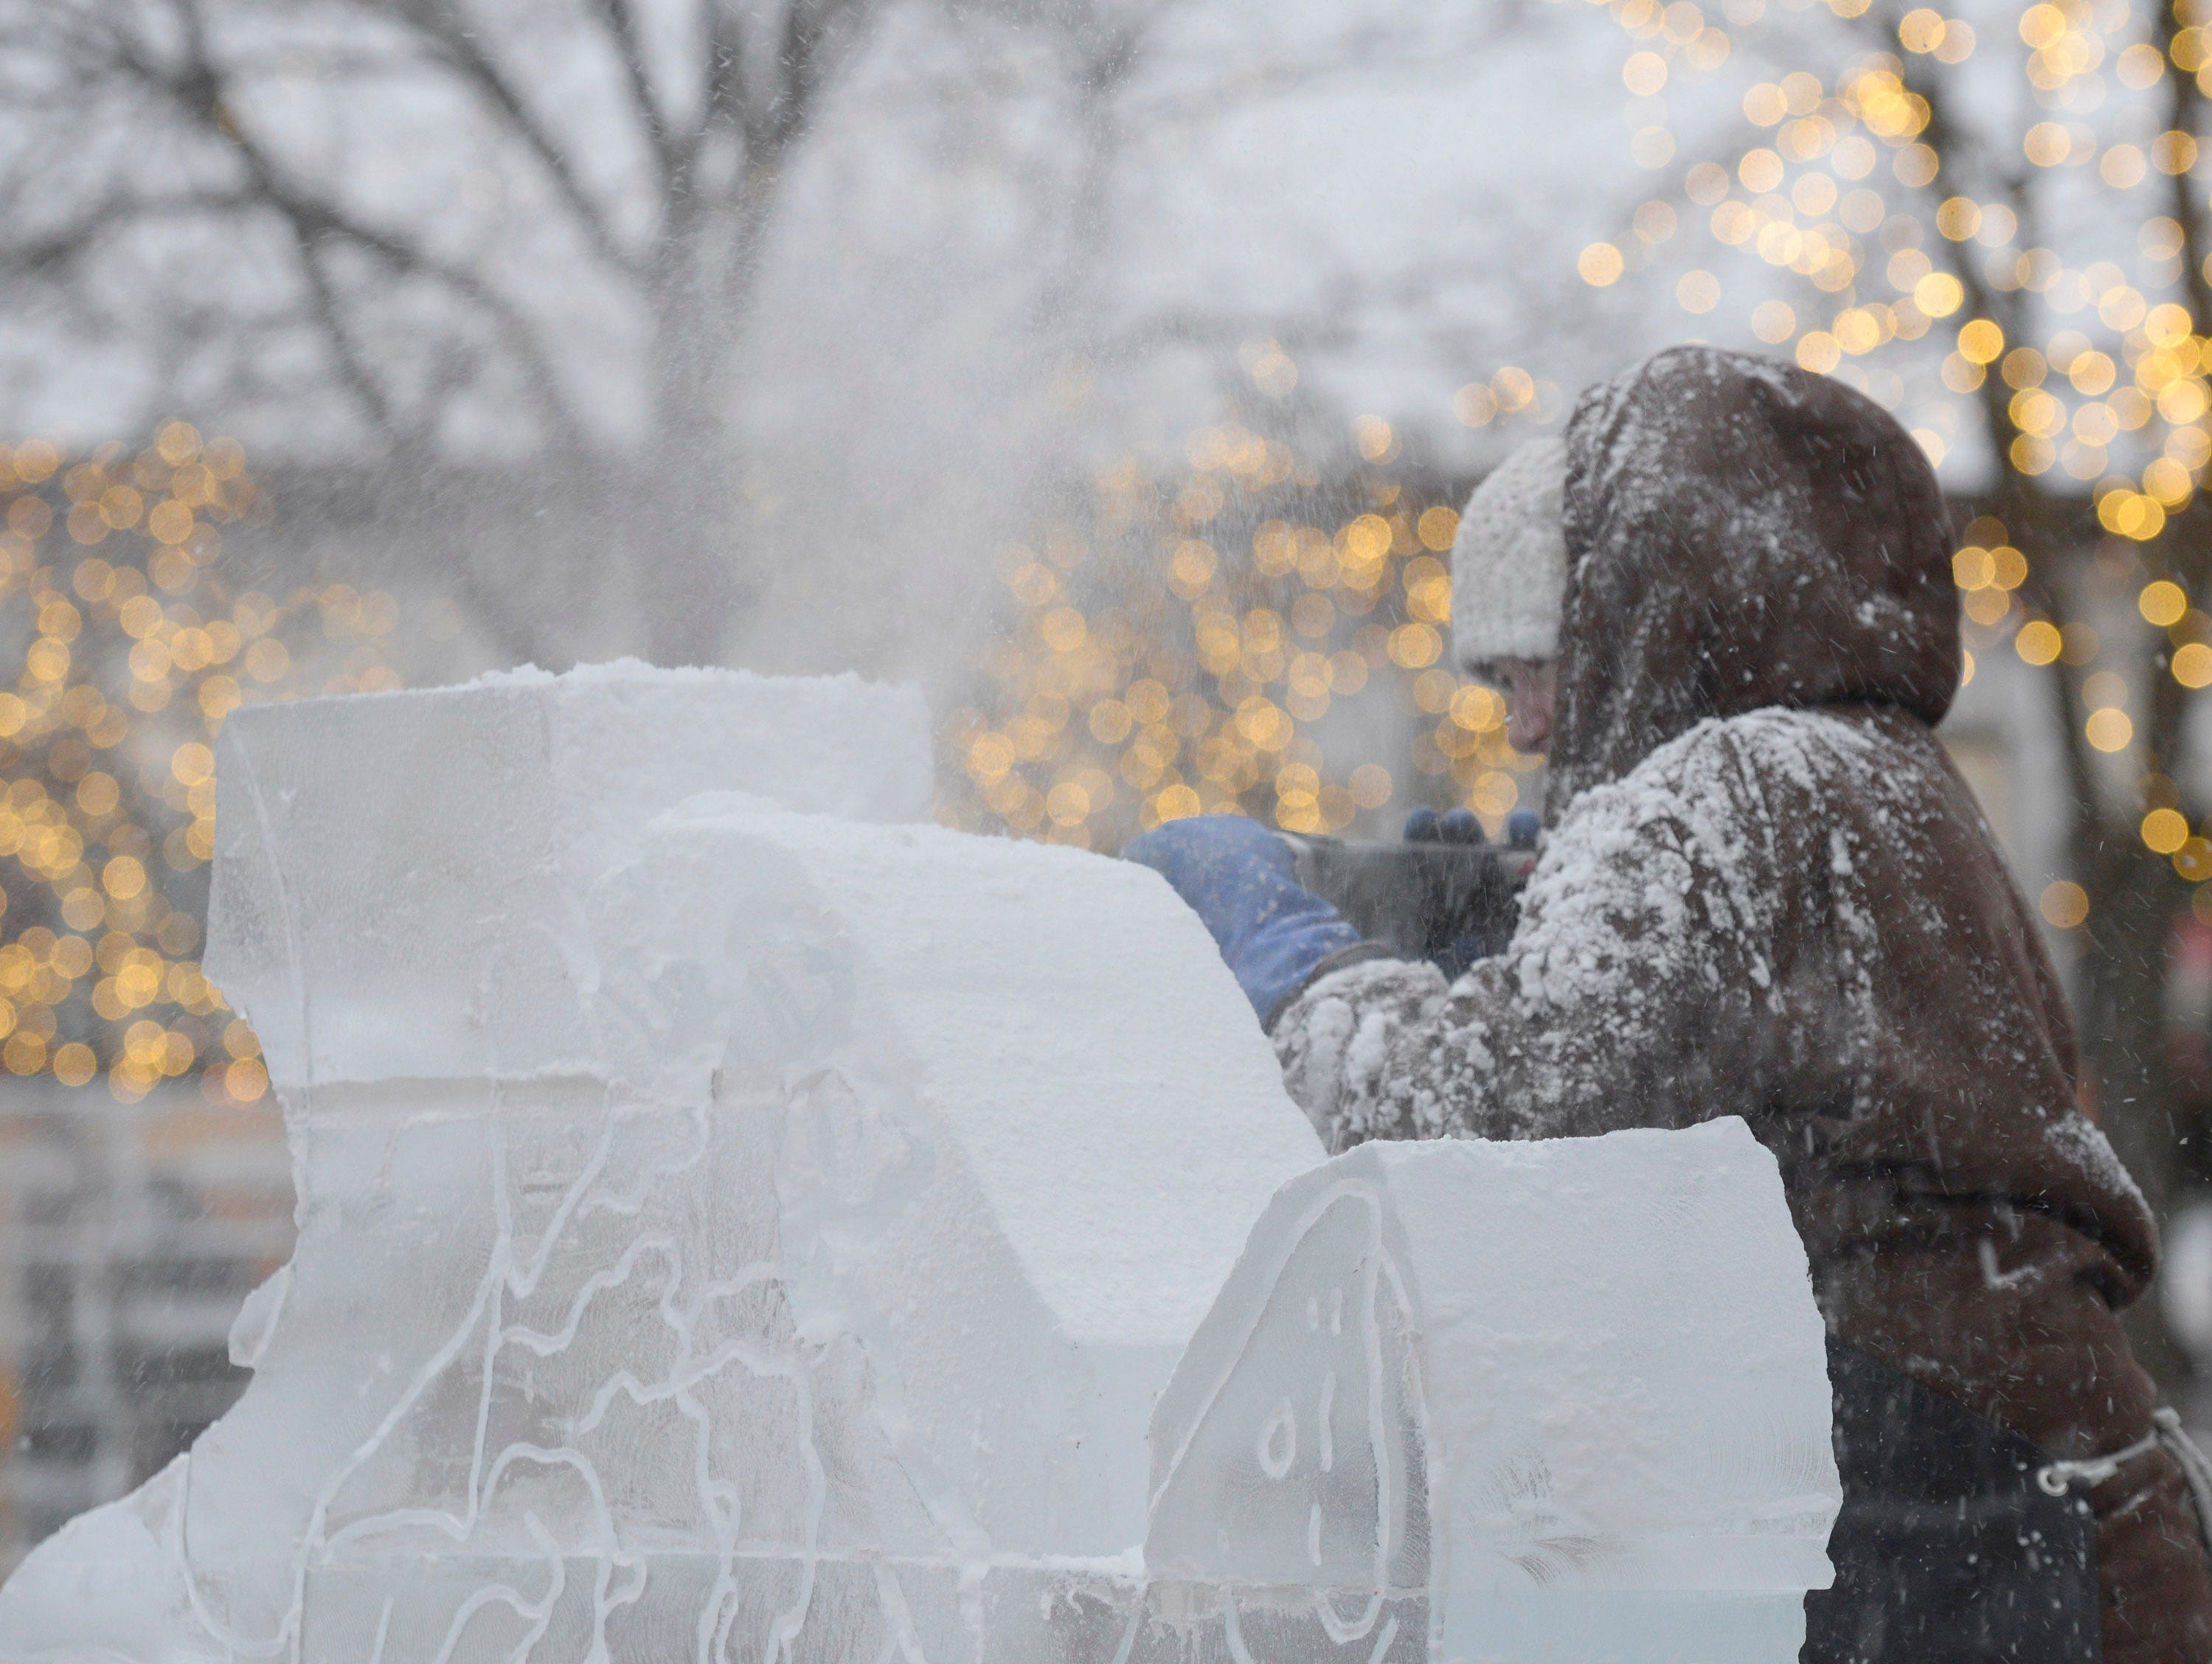 Lauren Klapar from Clear Cut Ice works on an ice carving in Kellogg Park for the Plymouth Ice Festival that runs Jan. 11-13.